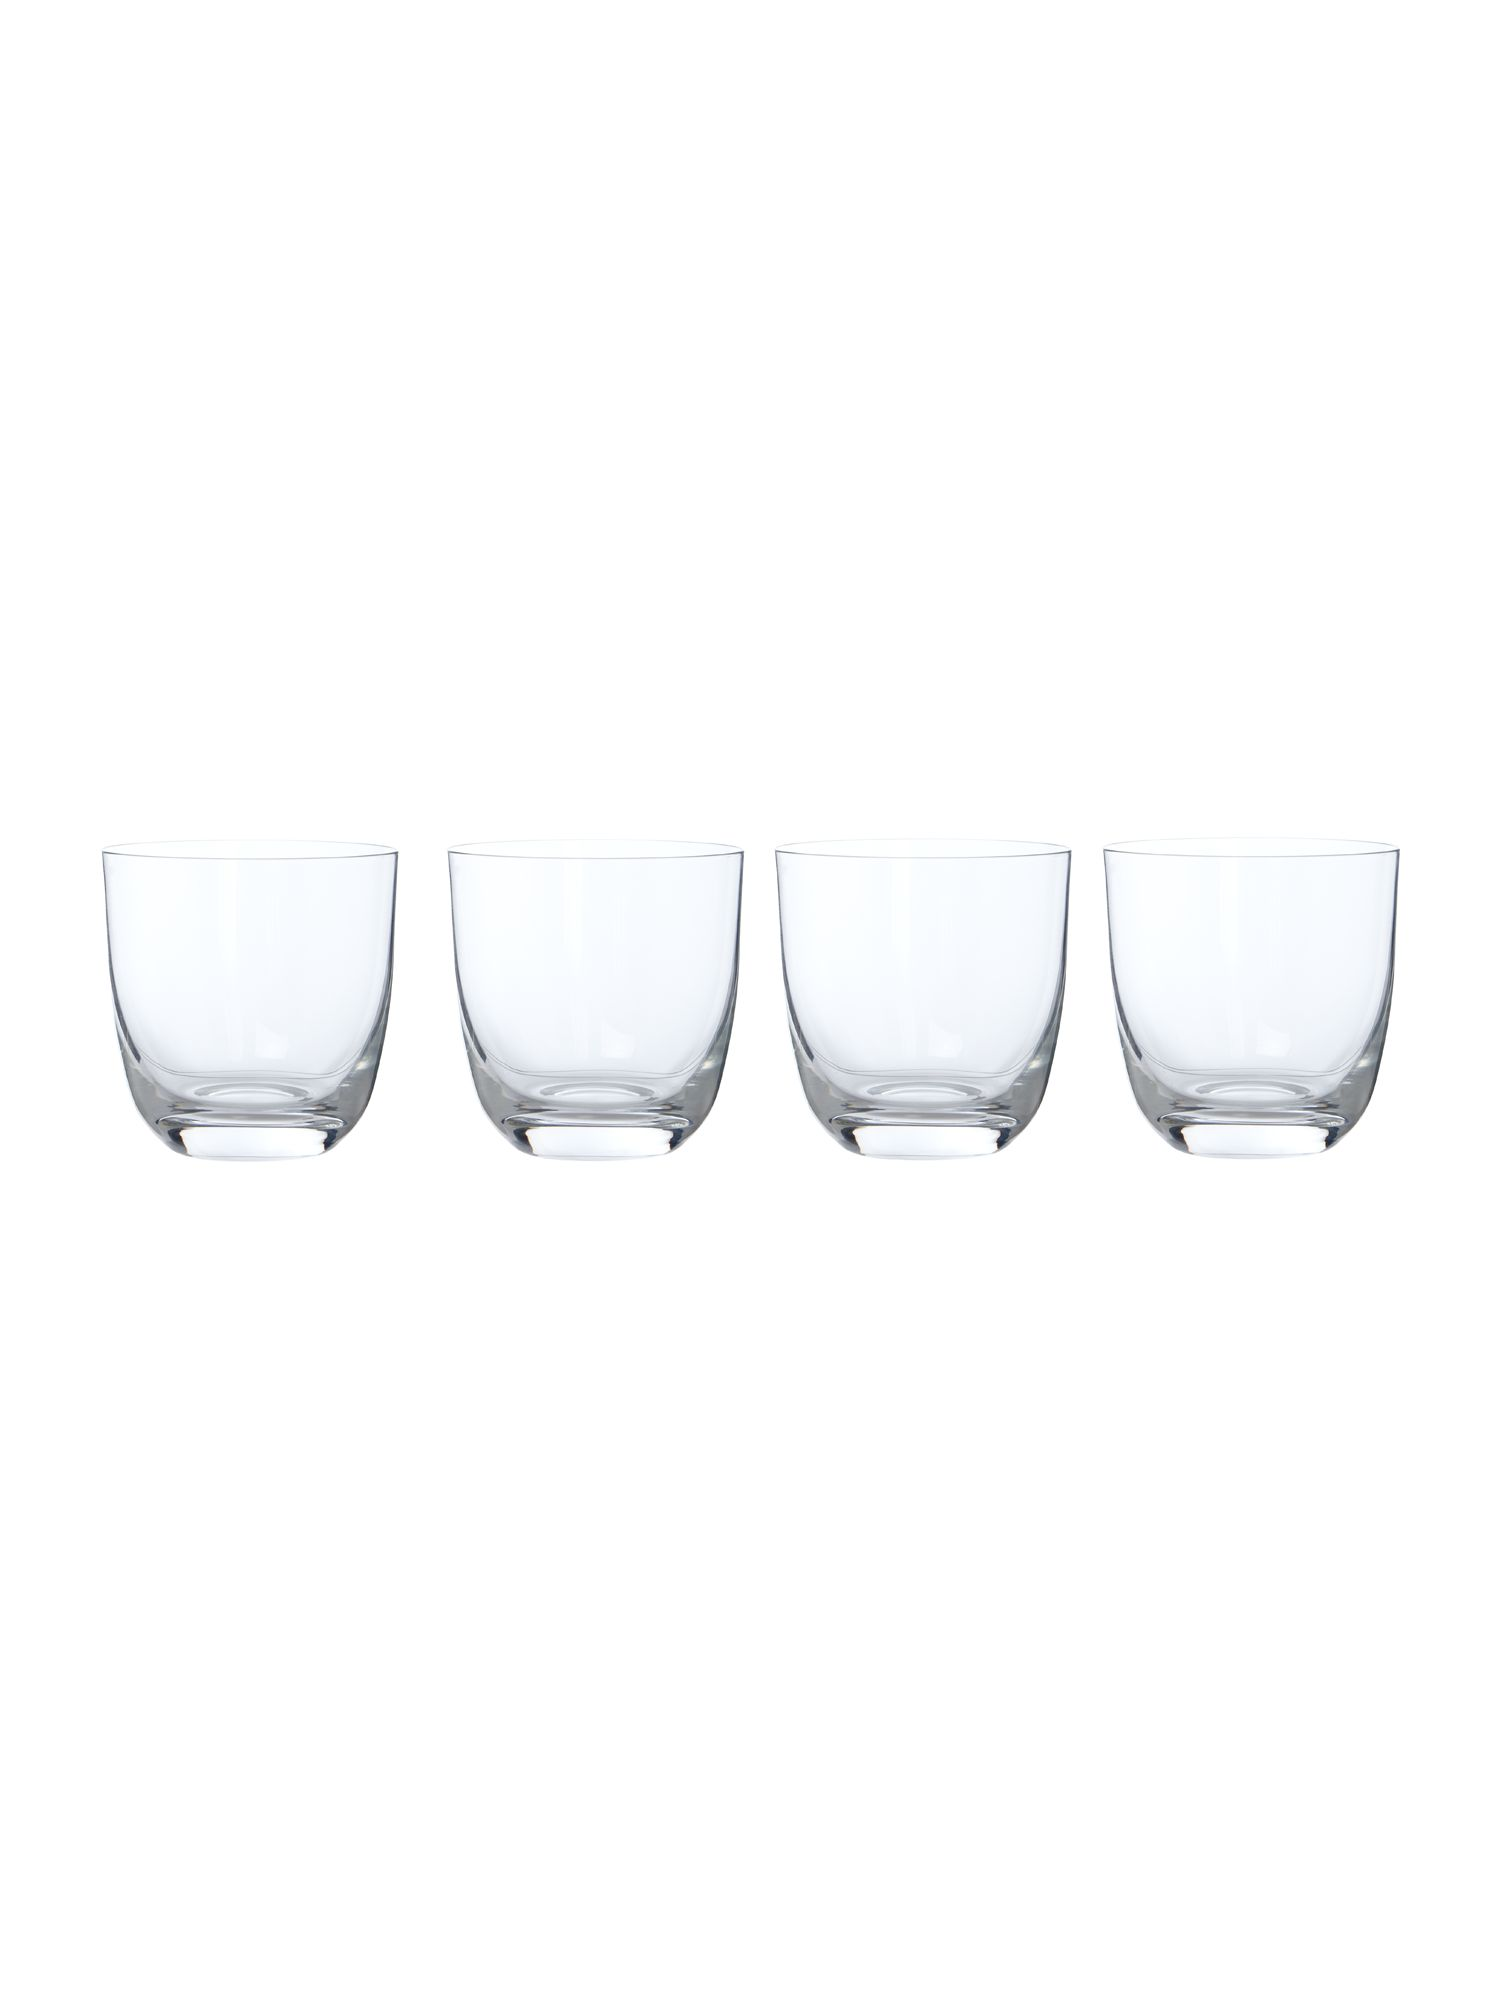 Nicole tumbler set of 4